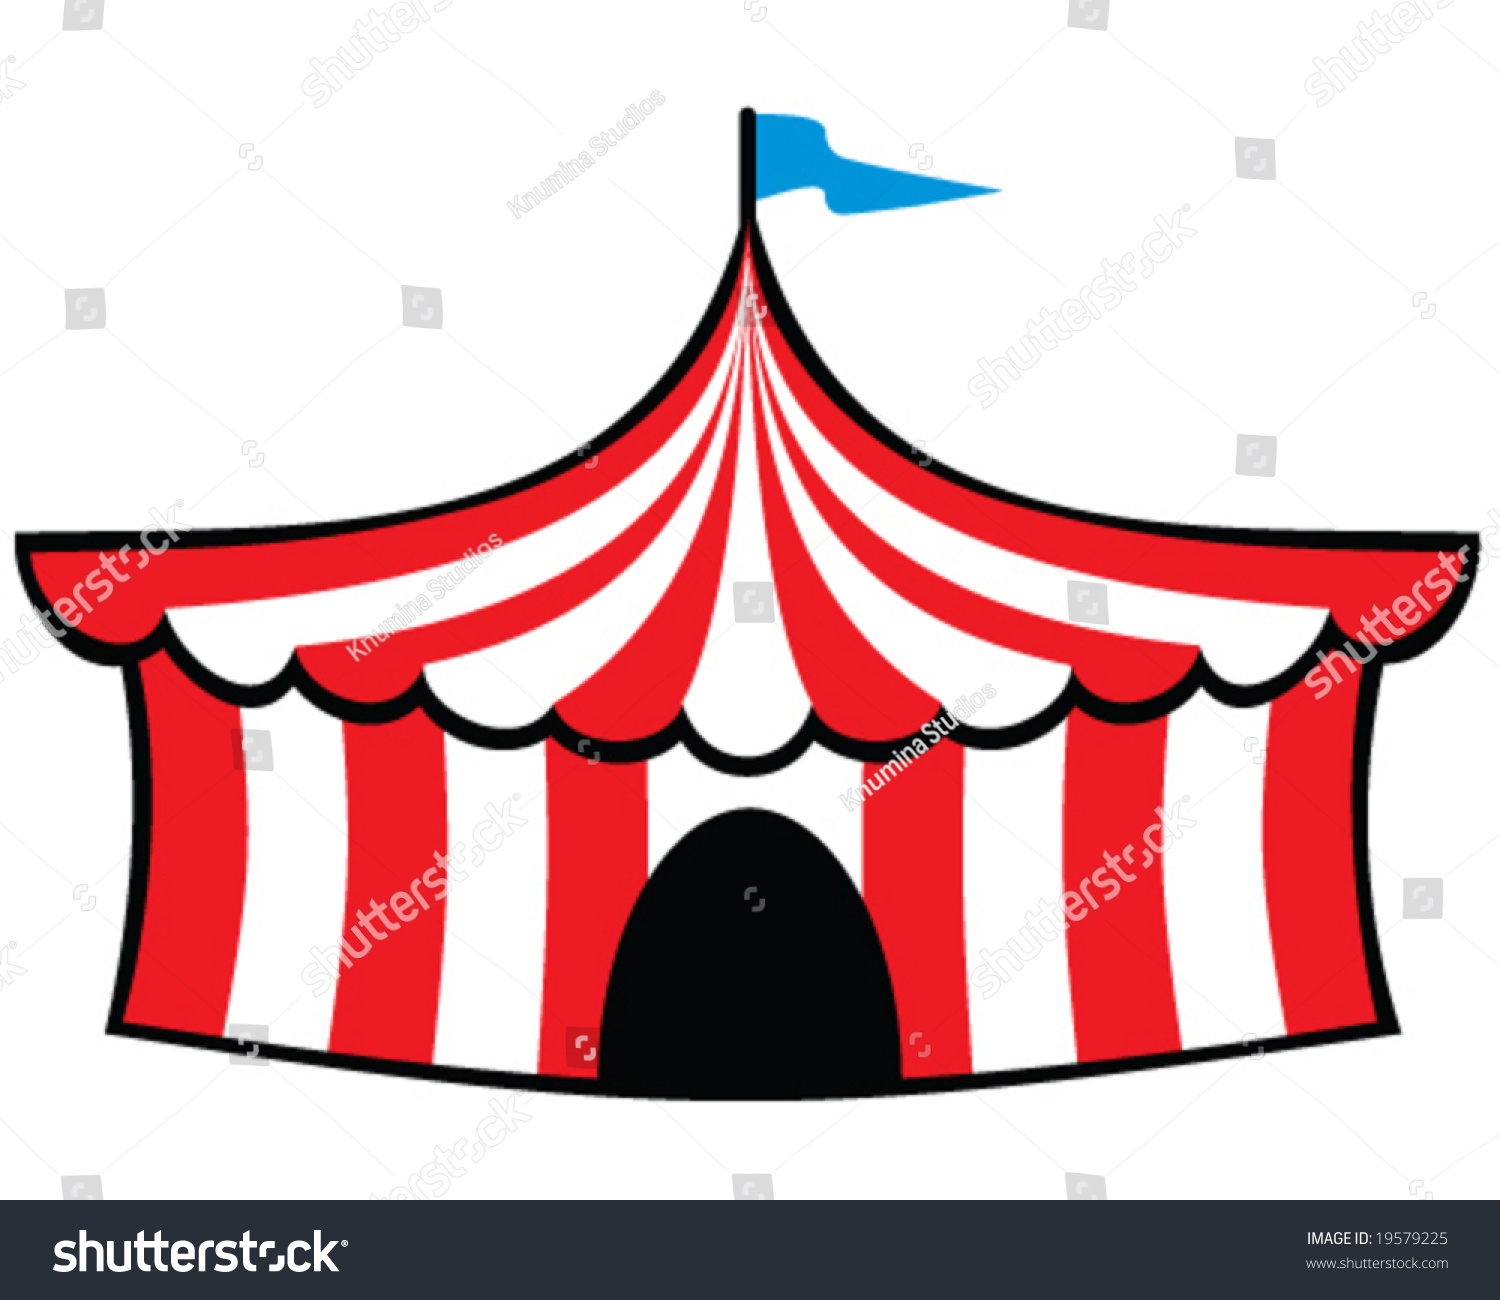 vector big top circus tent  sc 1 st  Shutterstock & Vector Big Top Circus Tent Stock Vector 19579225 - Shutterstock